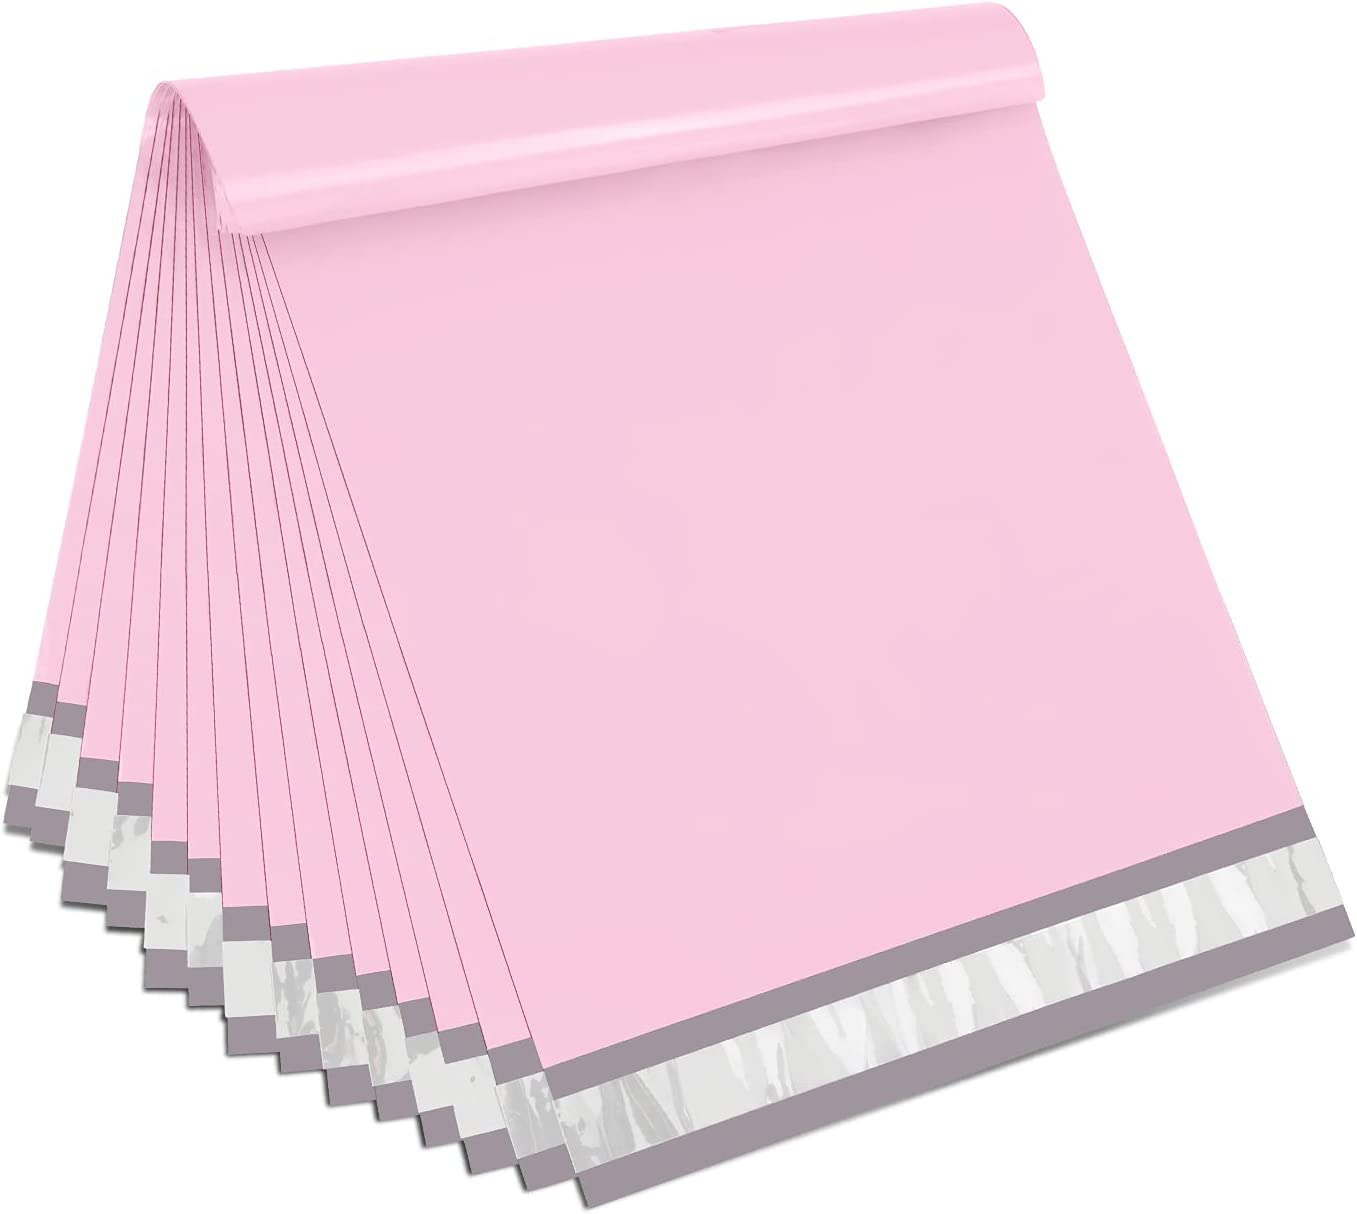 TOMVYTER 200PC Poly Mailers 12x16 Envelopes Mailing Inch Ba Clearance SALE Max 83% OFF Limited time Pink